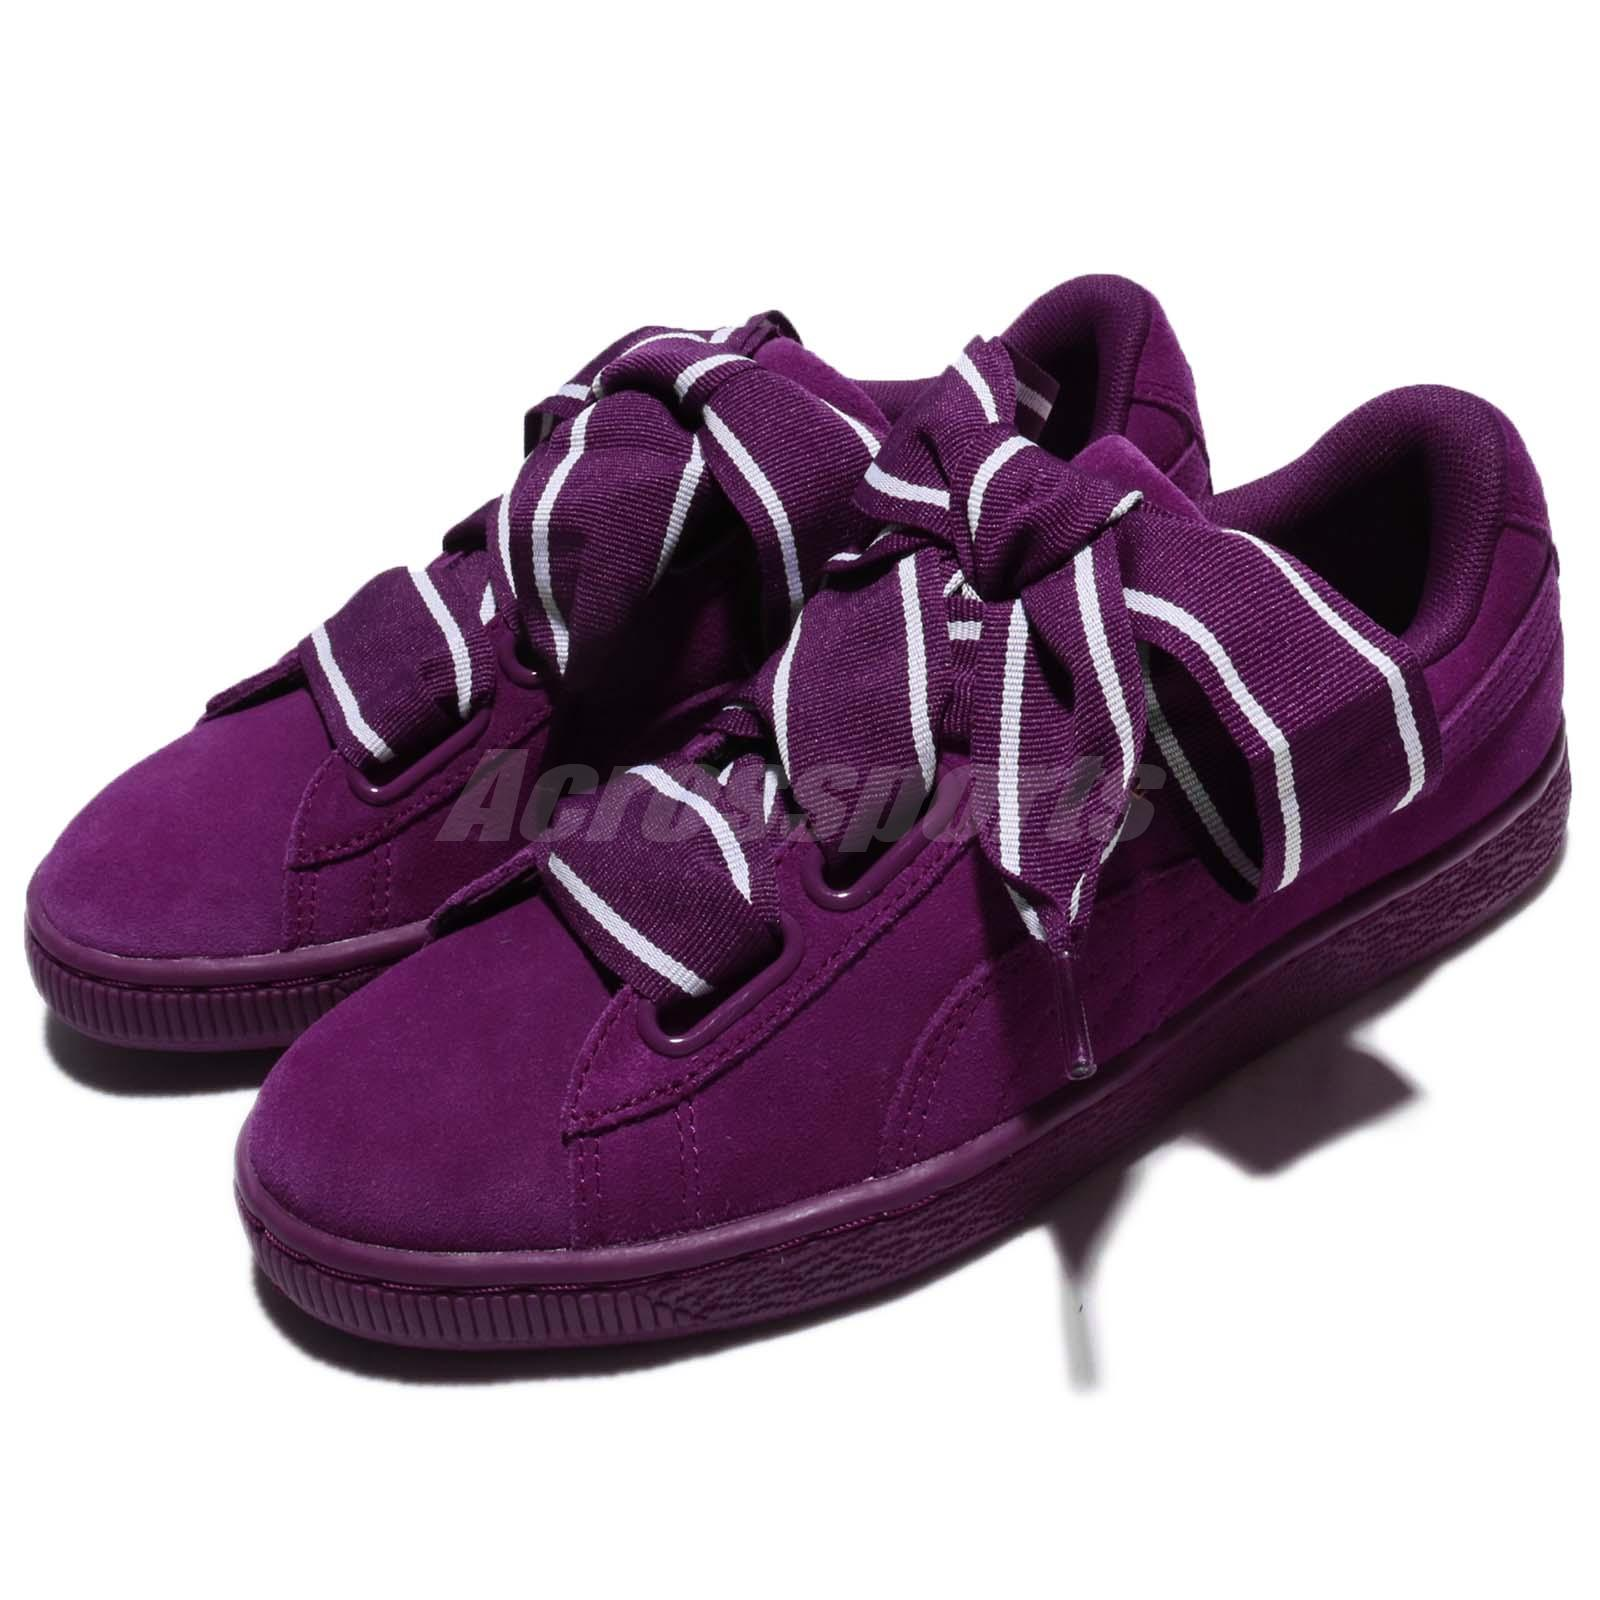 275cf51d1bcc3 Details about Puma Suede Heart Satin II 2 Wns Dark Purple Suede Women Shoes  Sneakers 364084-02